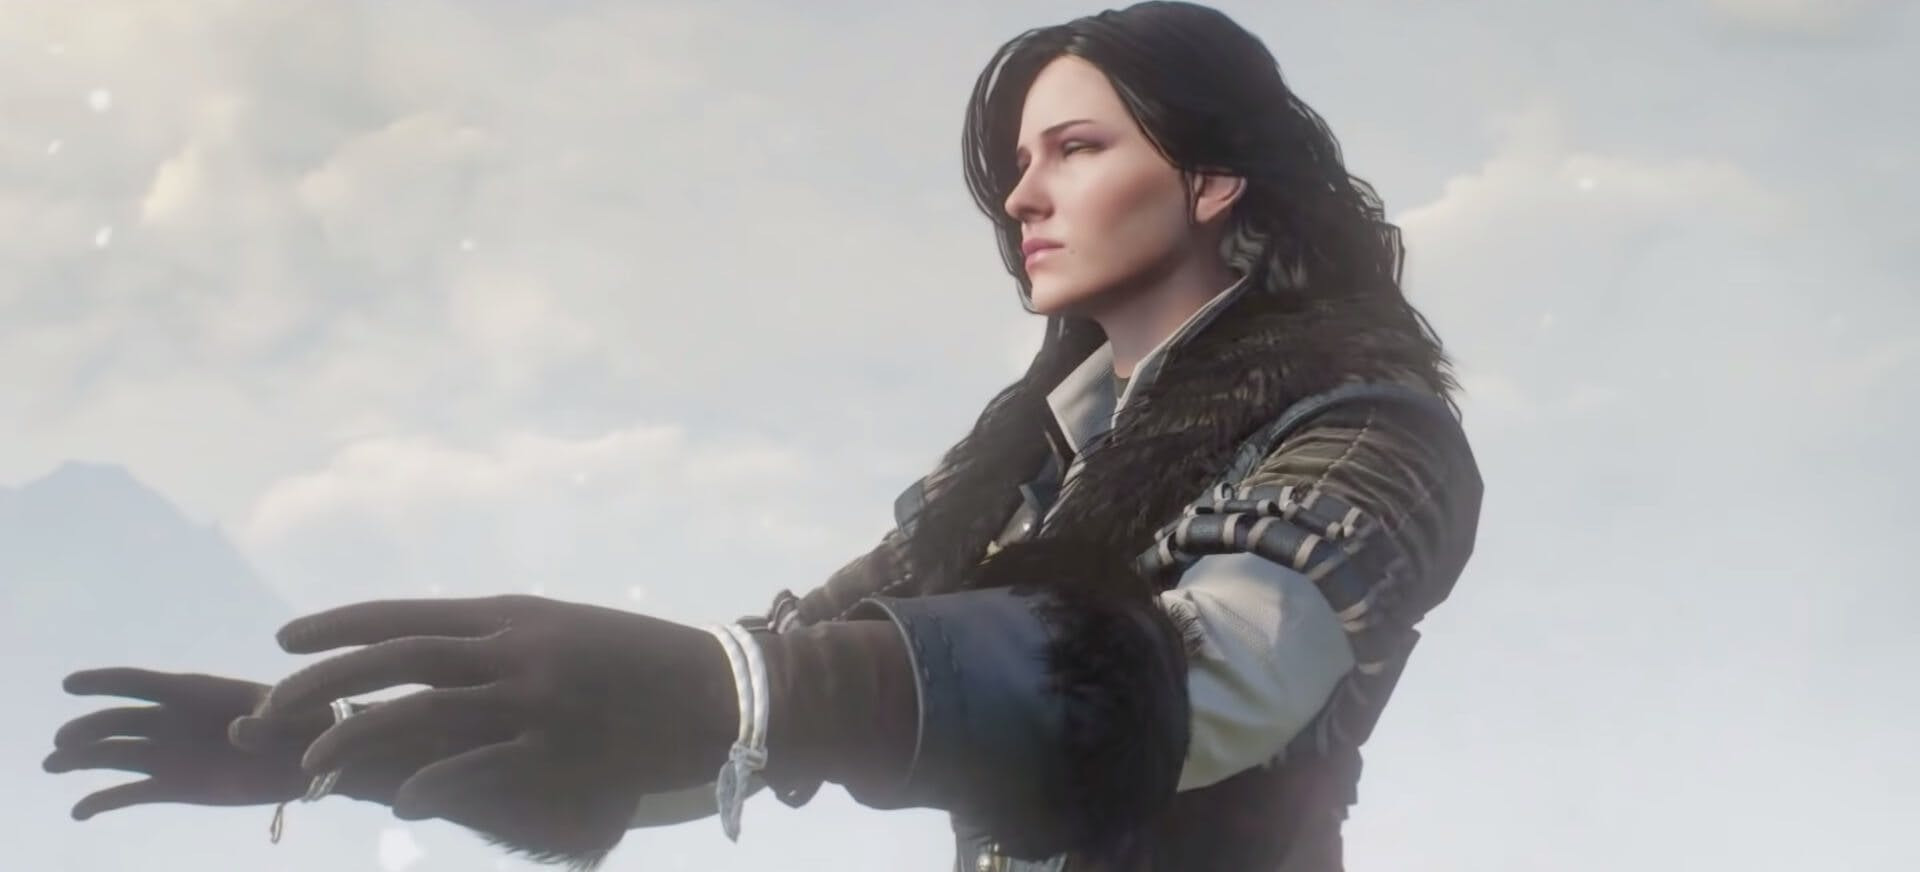 Yennefer - the Witcher magic